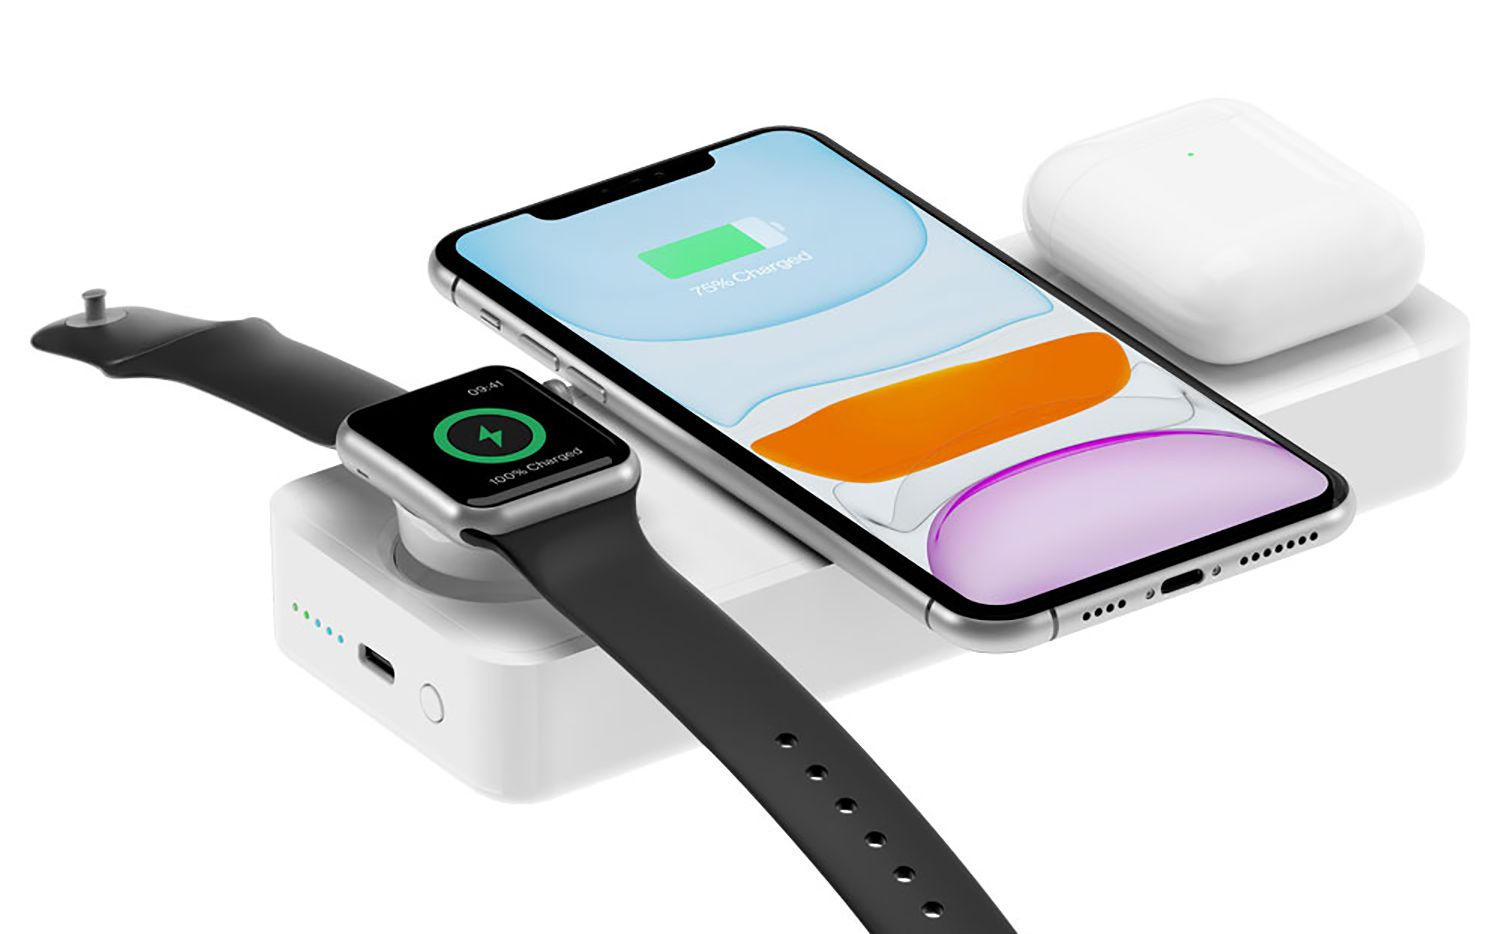 The Eggtronic Power Bar has two wireless charging spots, plus an Apple Watch charger and a USB-C port to charge a MacBook Pro.